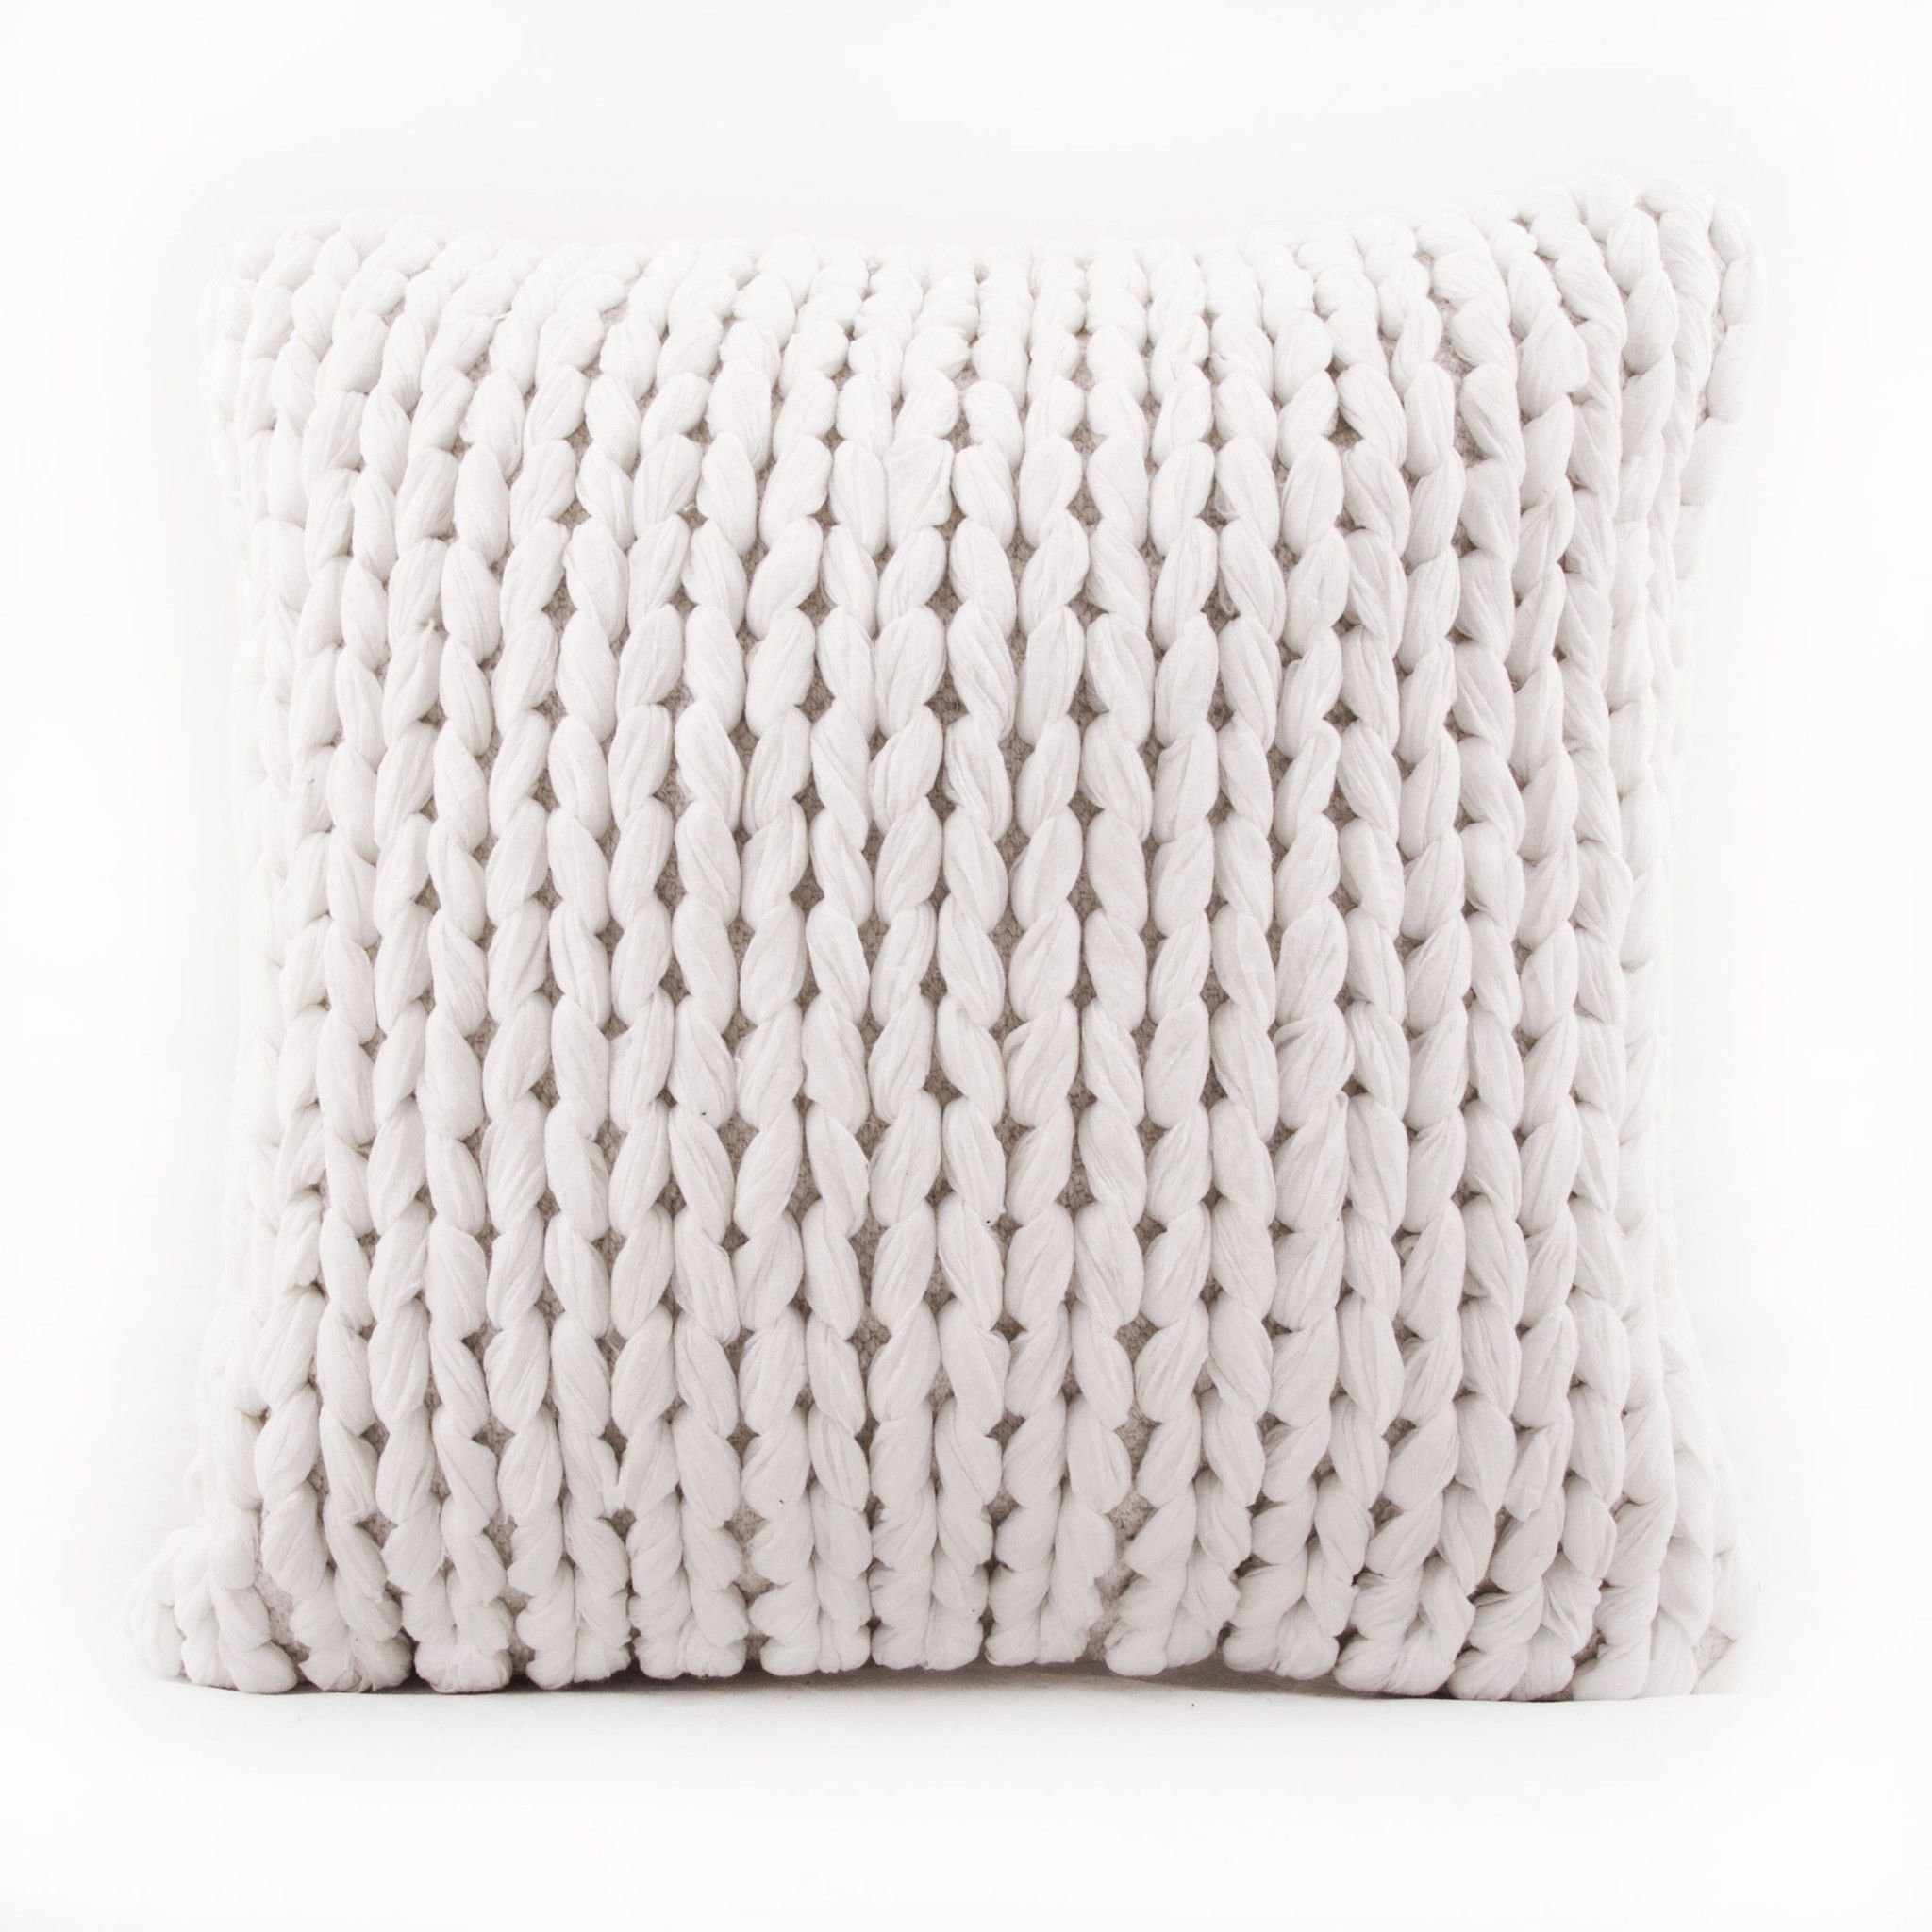 Decorative Cable Knit Throw Pillow Throw Pillows Apartment Decorating Living College Living Room Decor